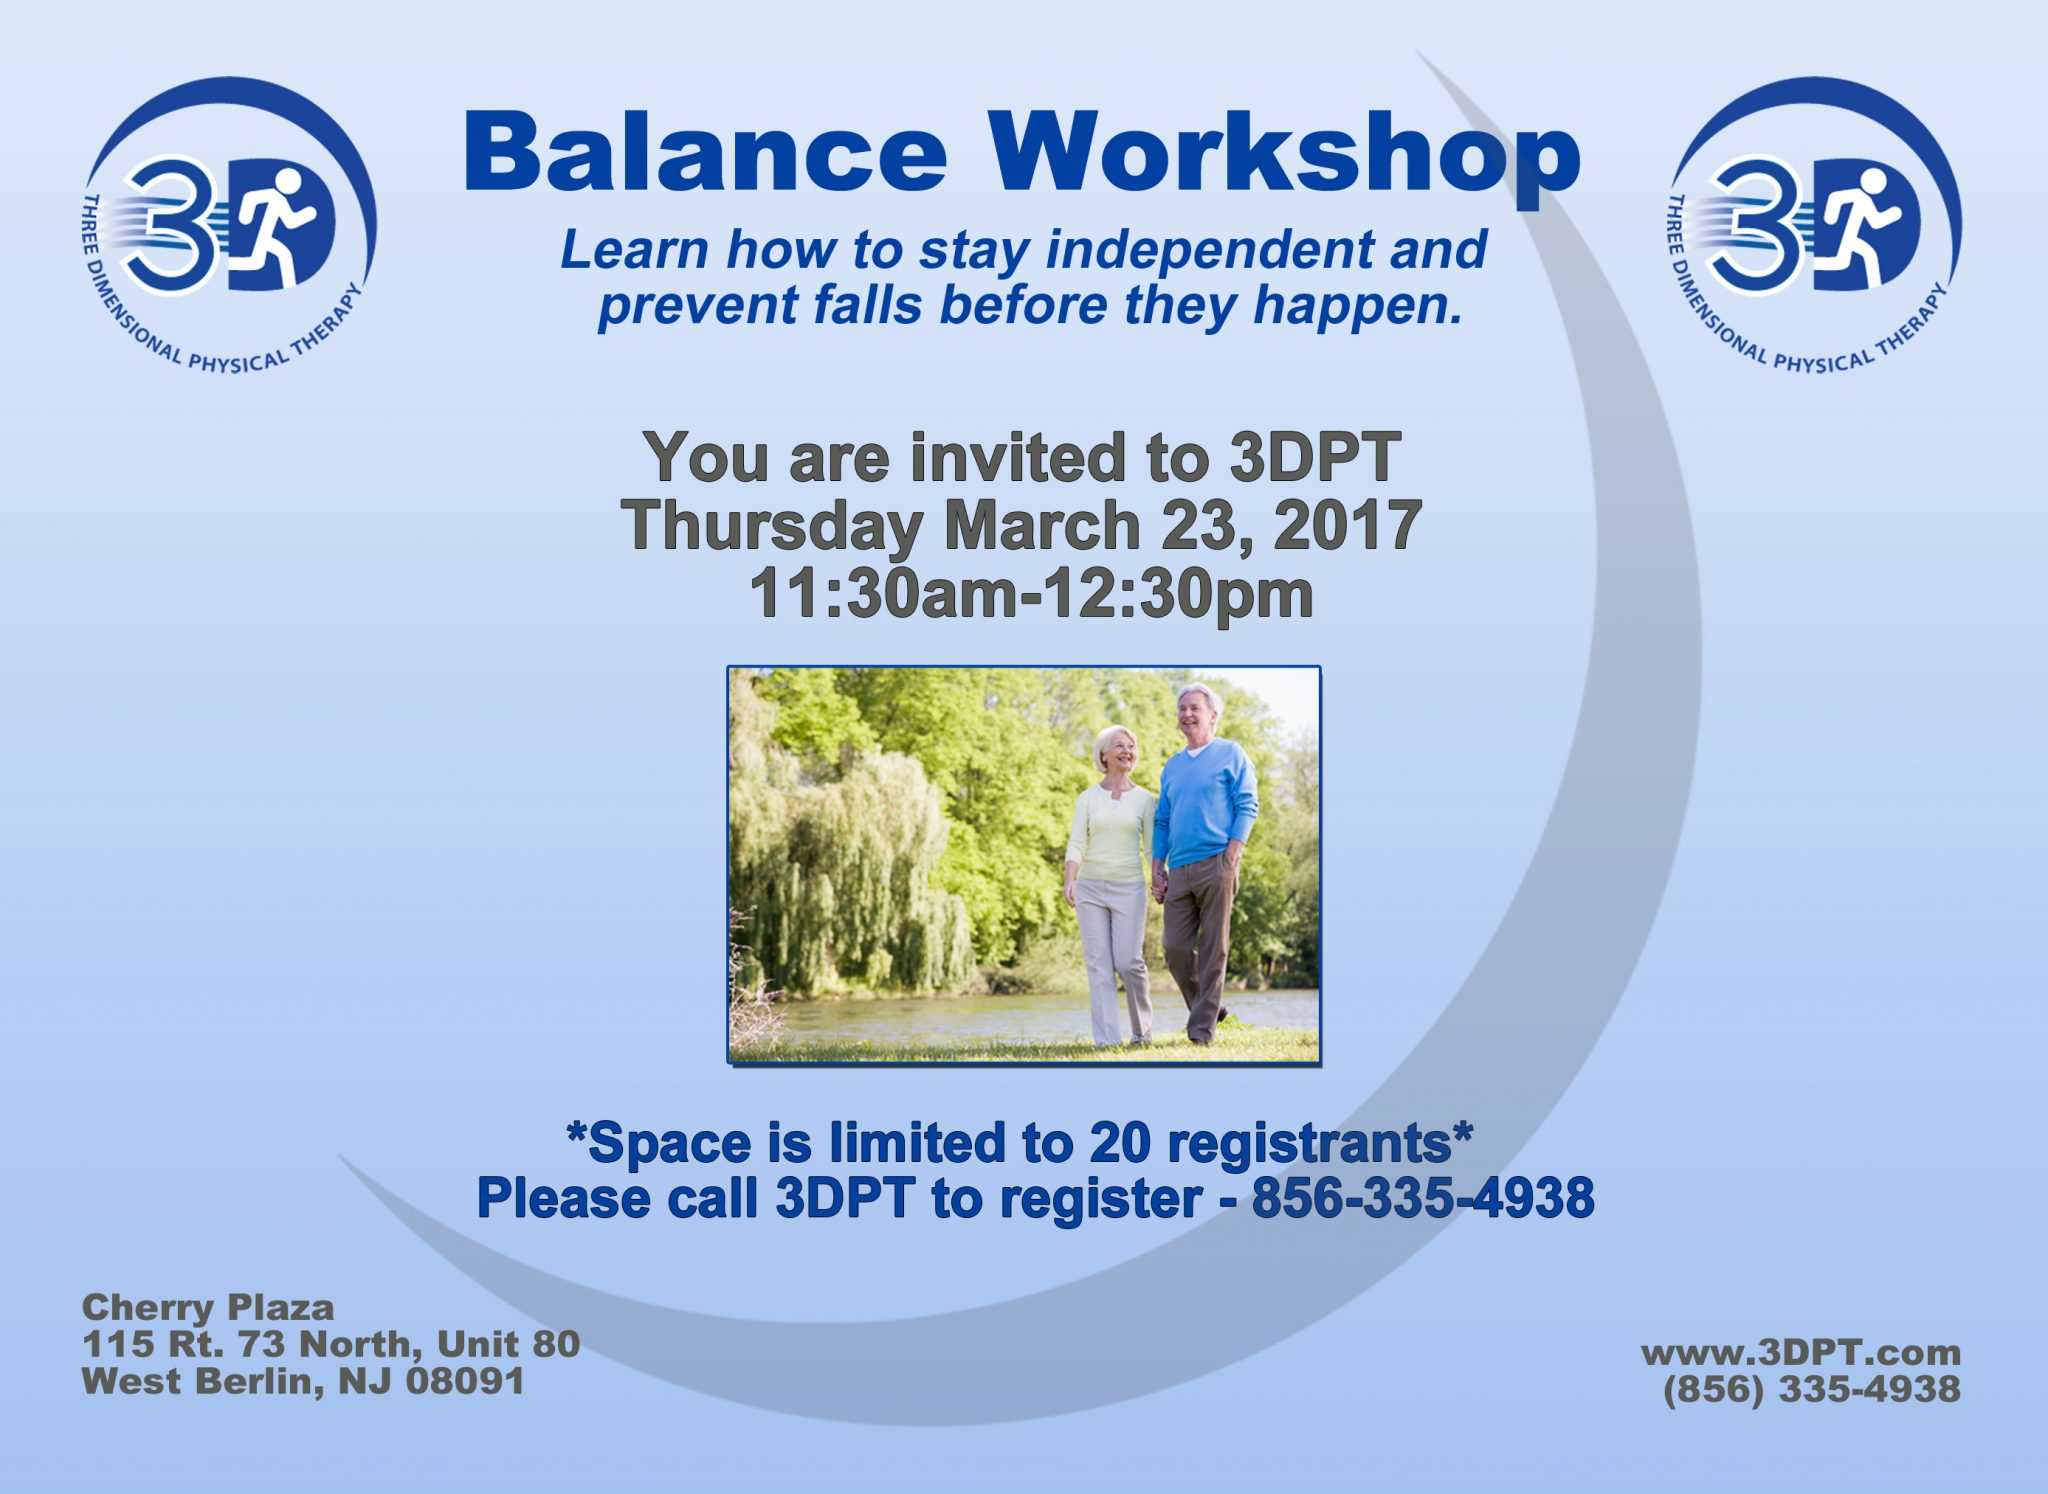 Balance Workshop Flyer